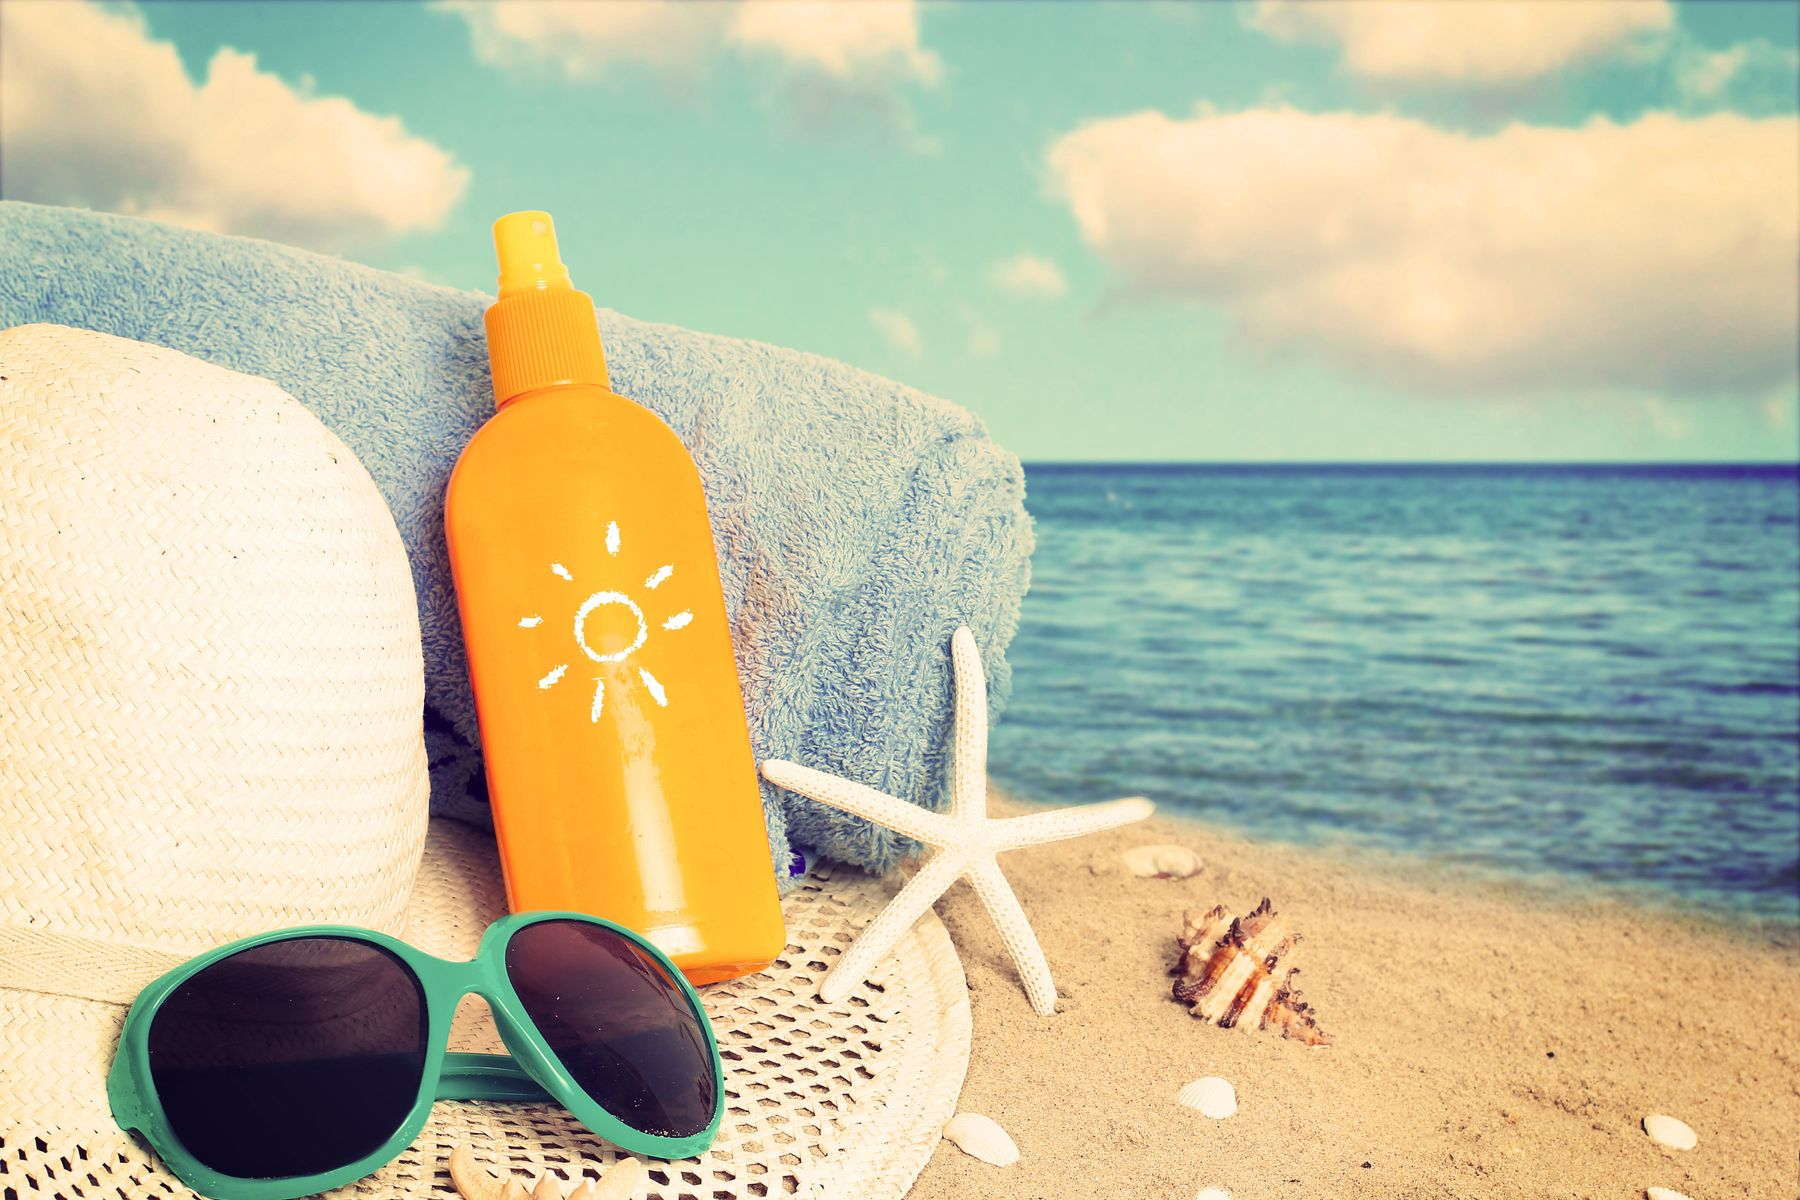 Bottle of suntan lotion, glasses, hat and towel on the beach